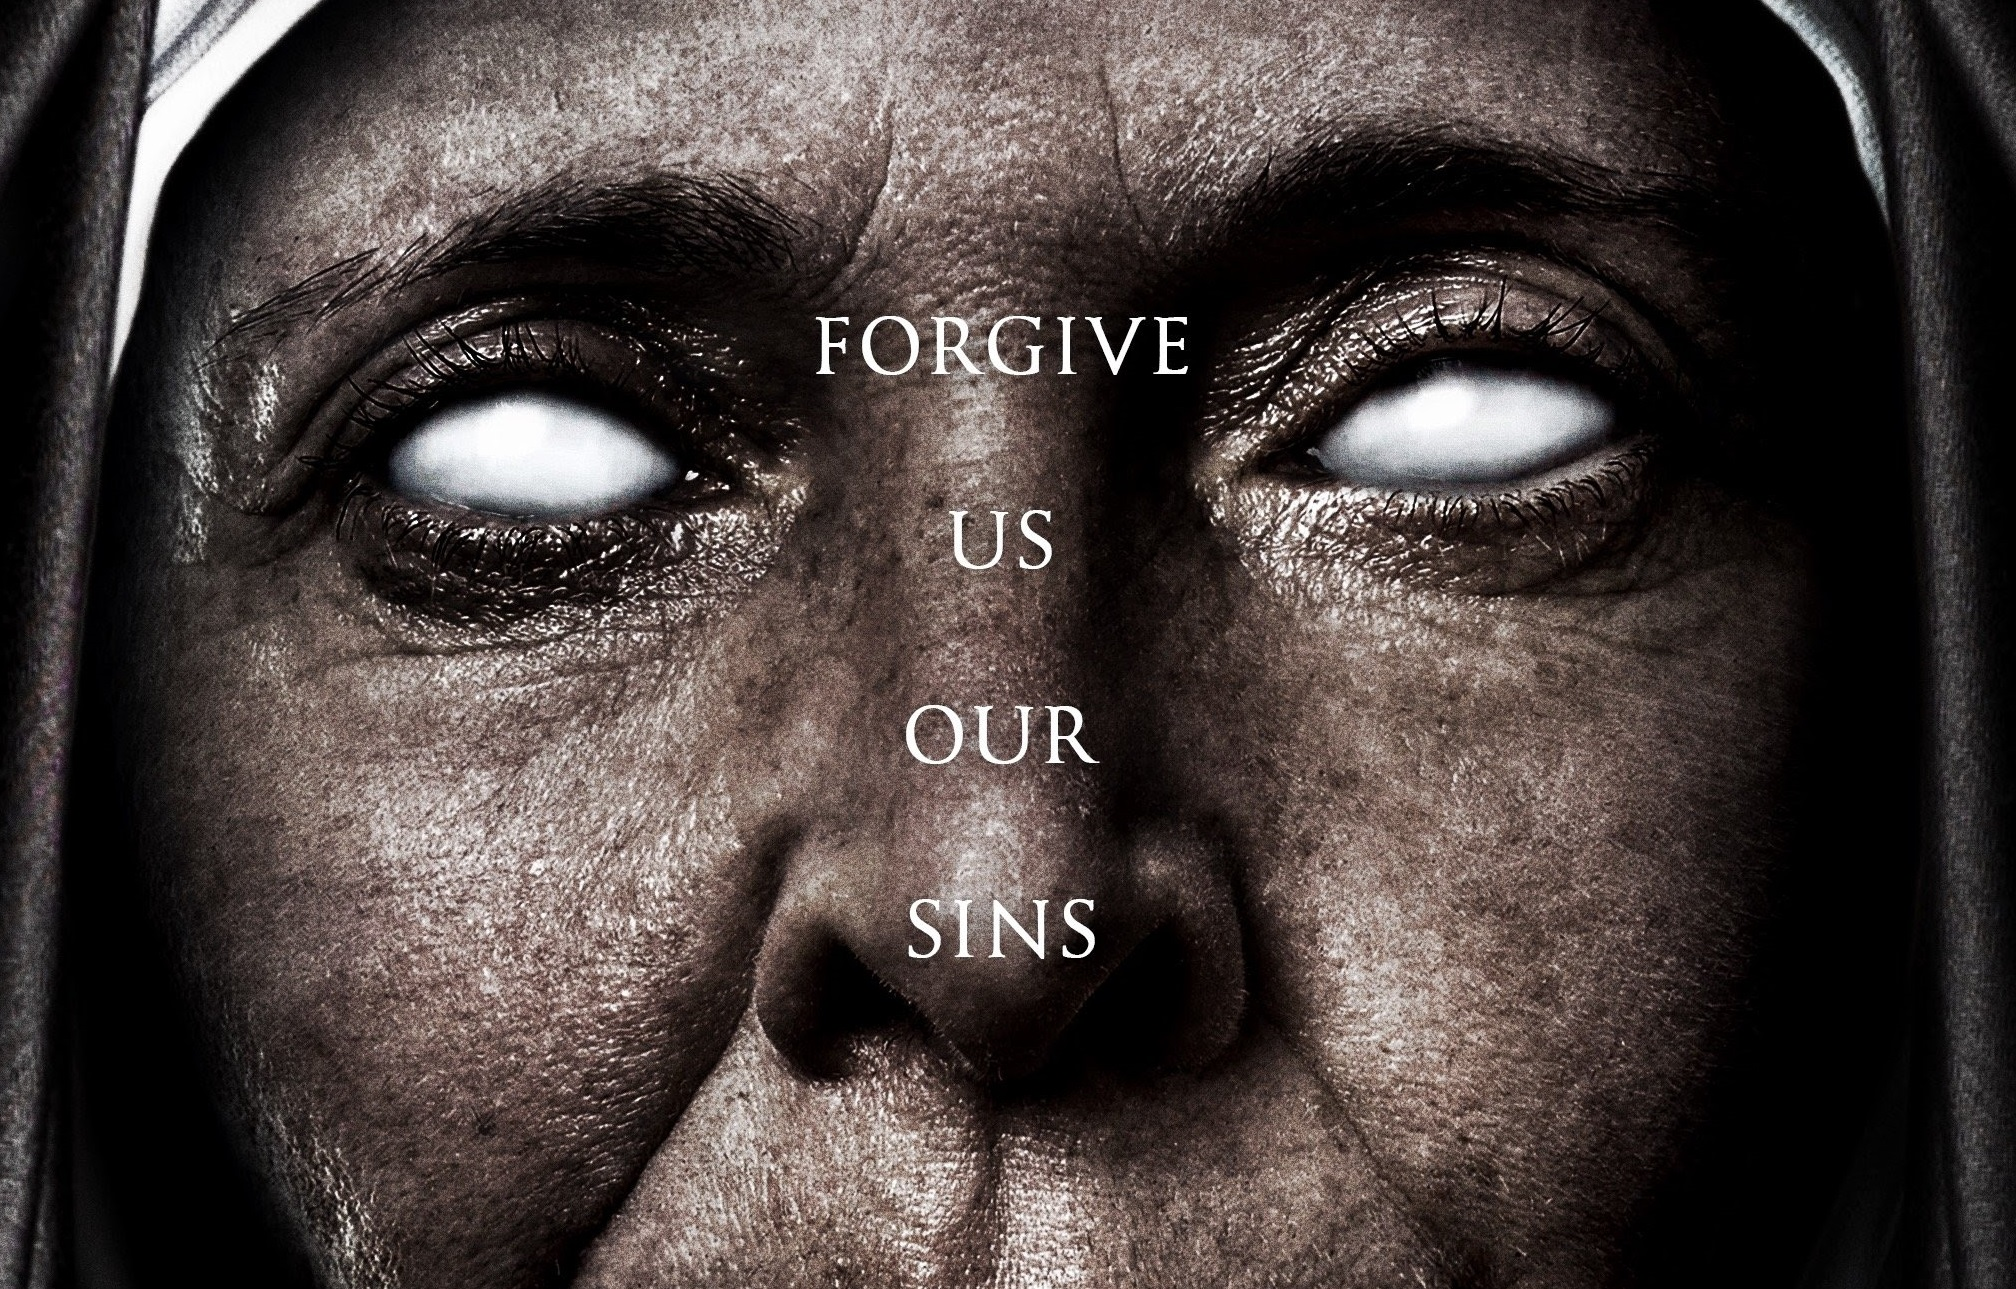 [News] All Sins are Forgiven with THE CONVENT Trailer